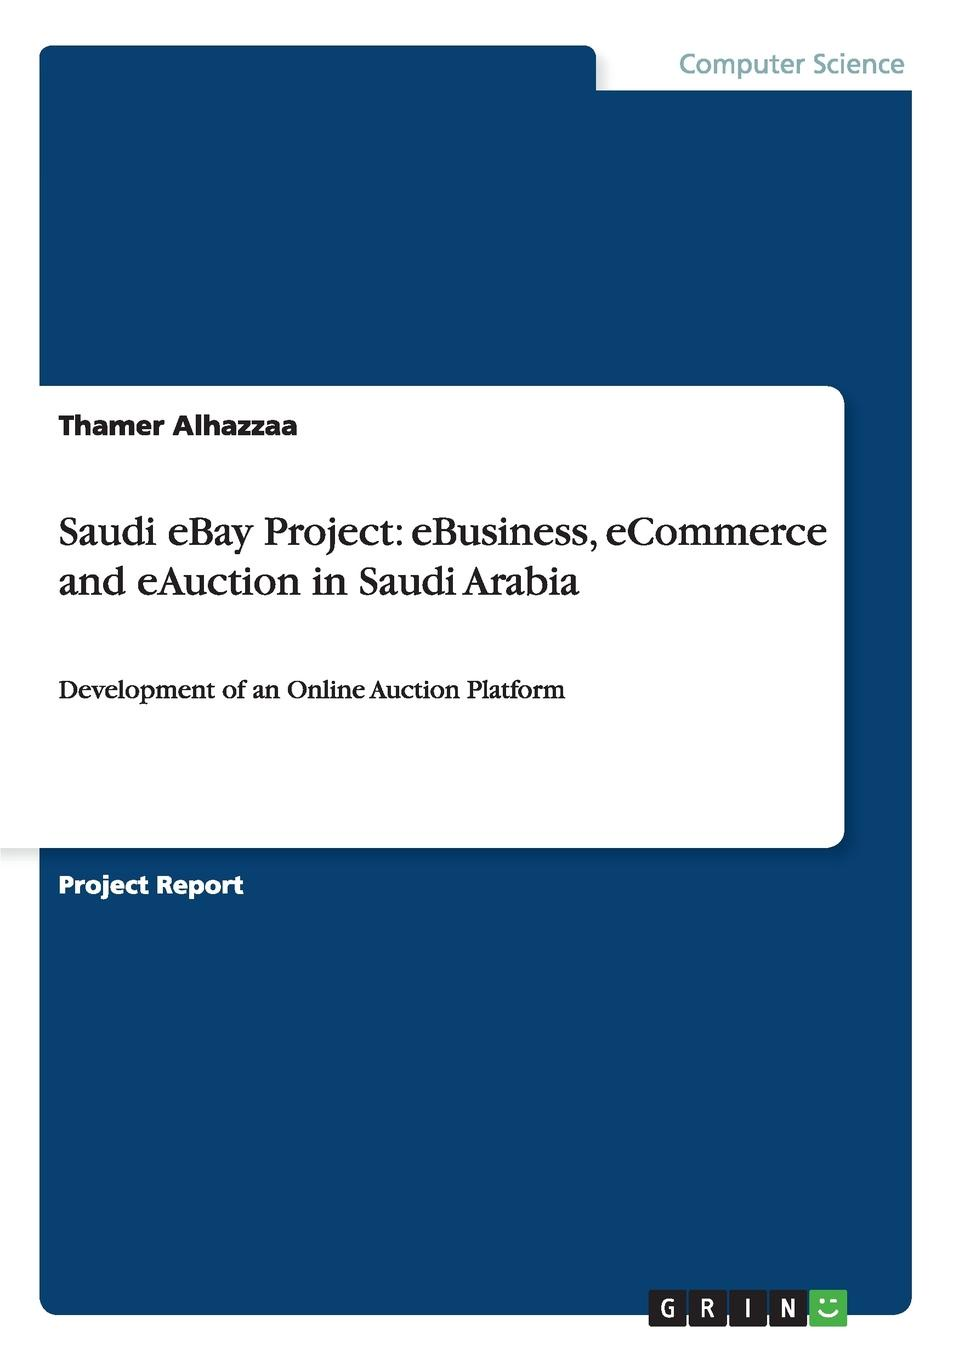 Thamer Alhazzaa Saudi eBay Project. eBusiness, eCommerce and eAuction in Saudi Arabia edward burton business and entrepreneurship in saudi arabia opportunities for partnering and investing in emerging businesses